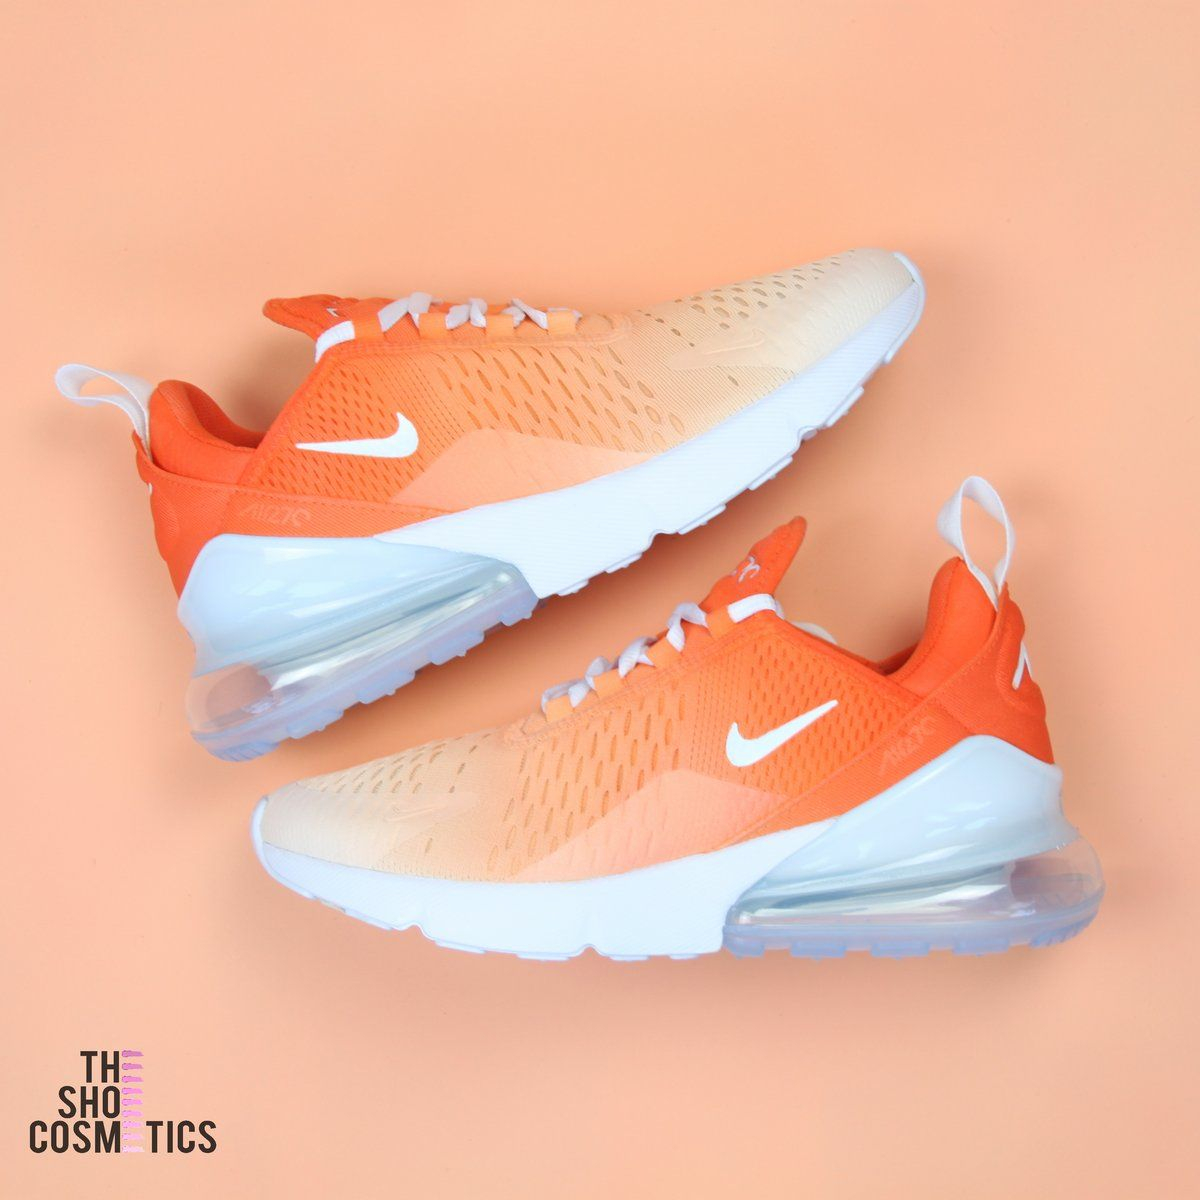 Orange ombre nike air max 270's custom shoes in 2019